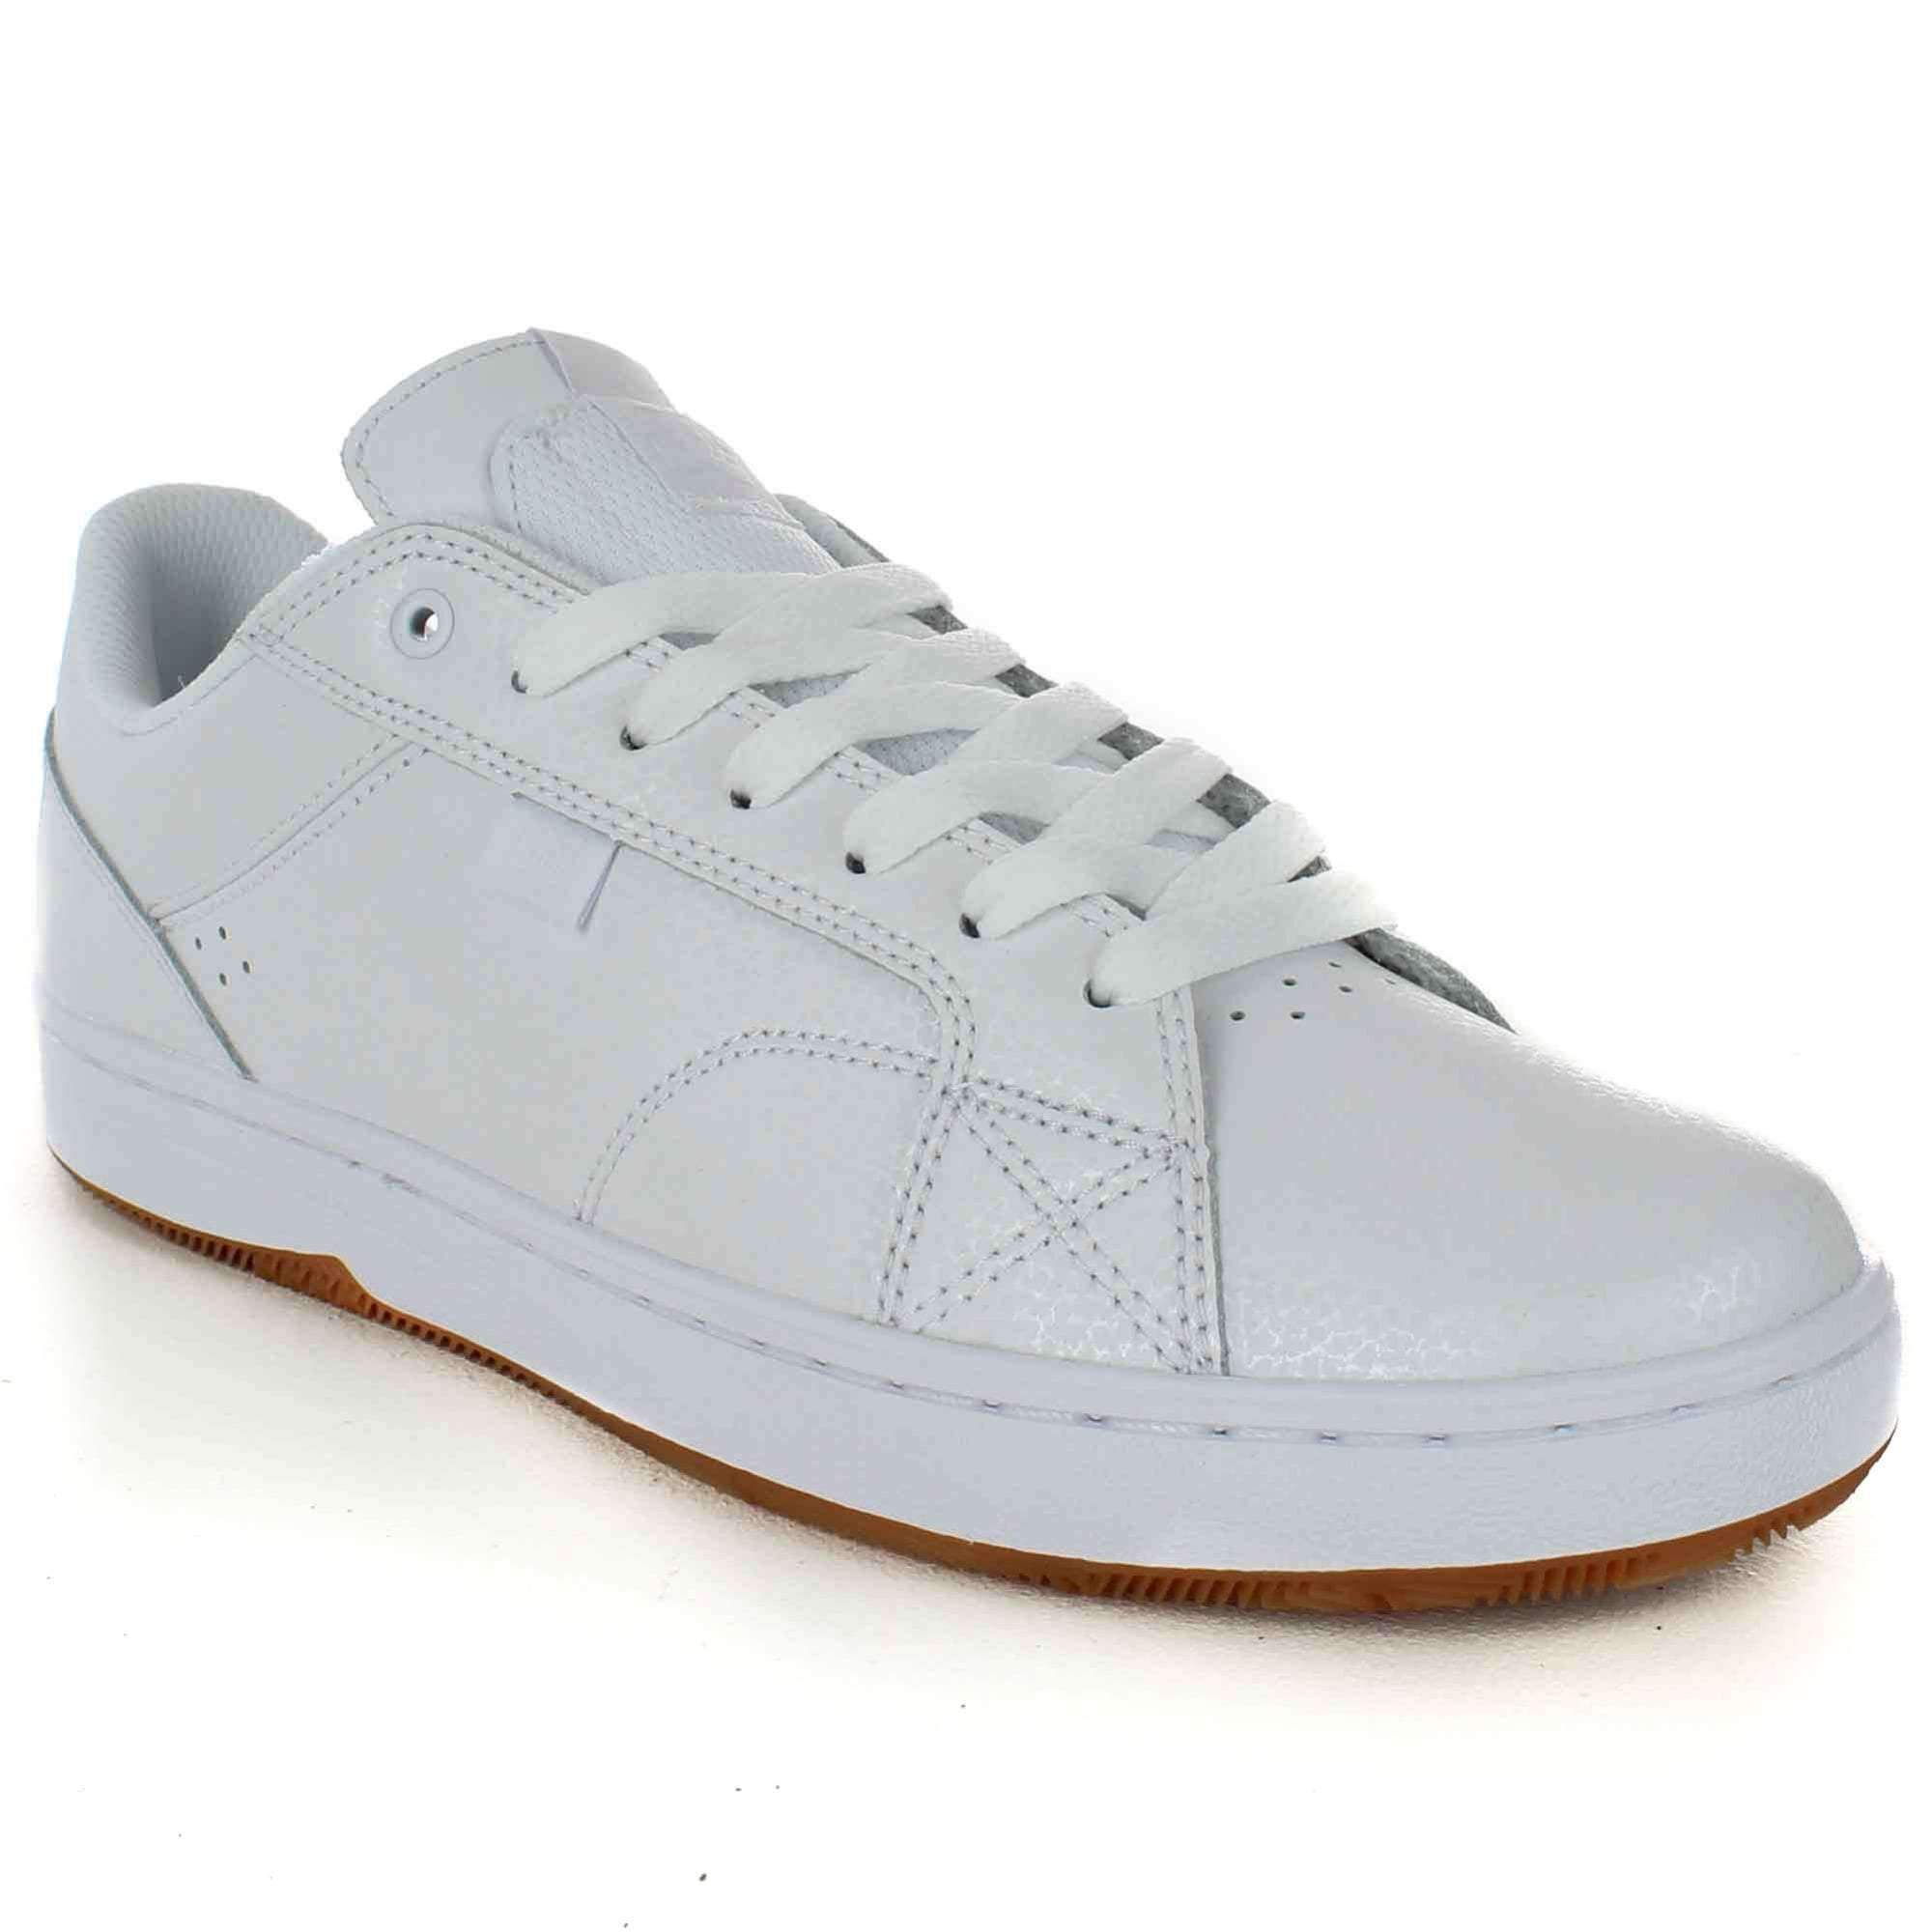 DC Astor Shoes in White Gum